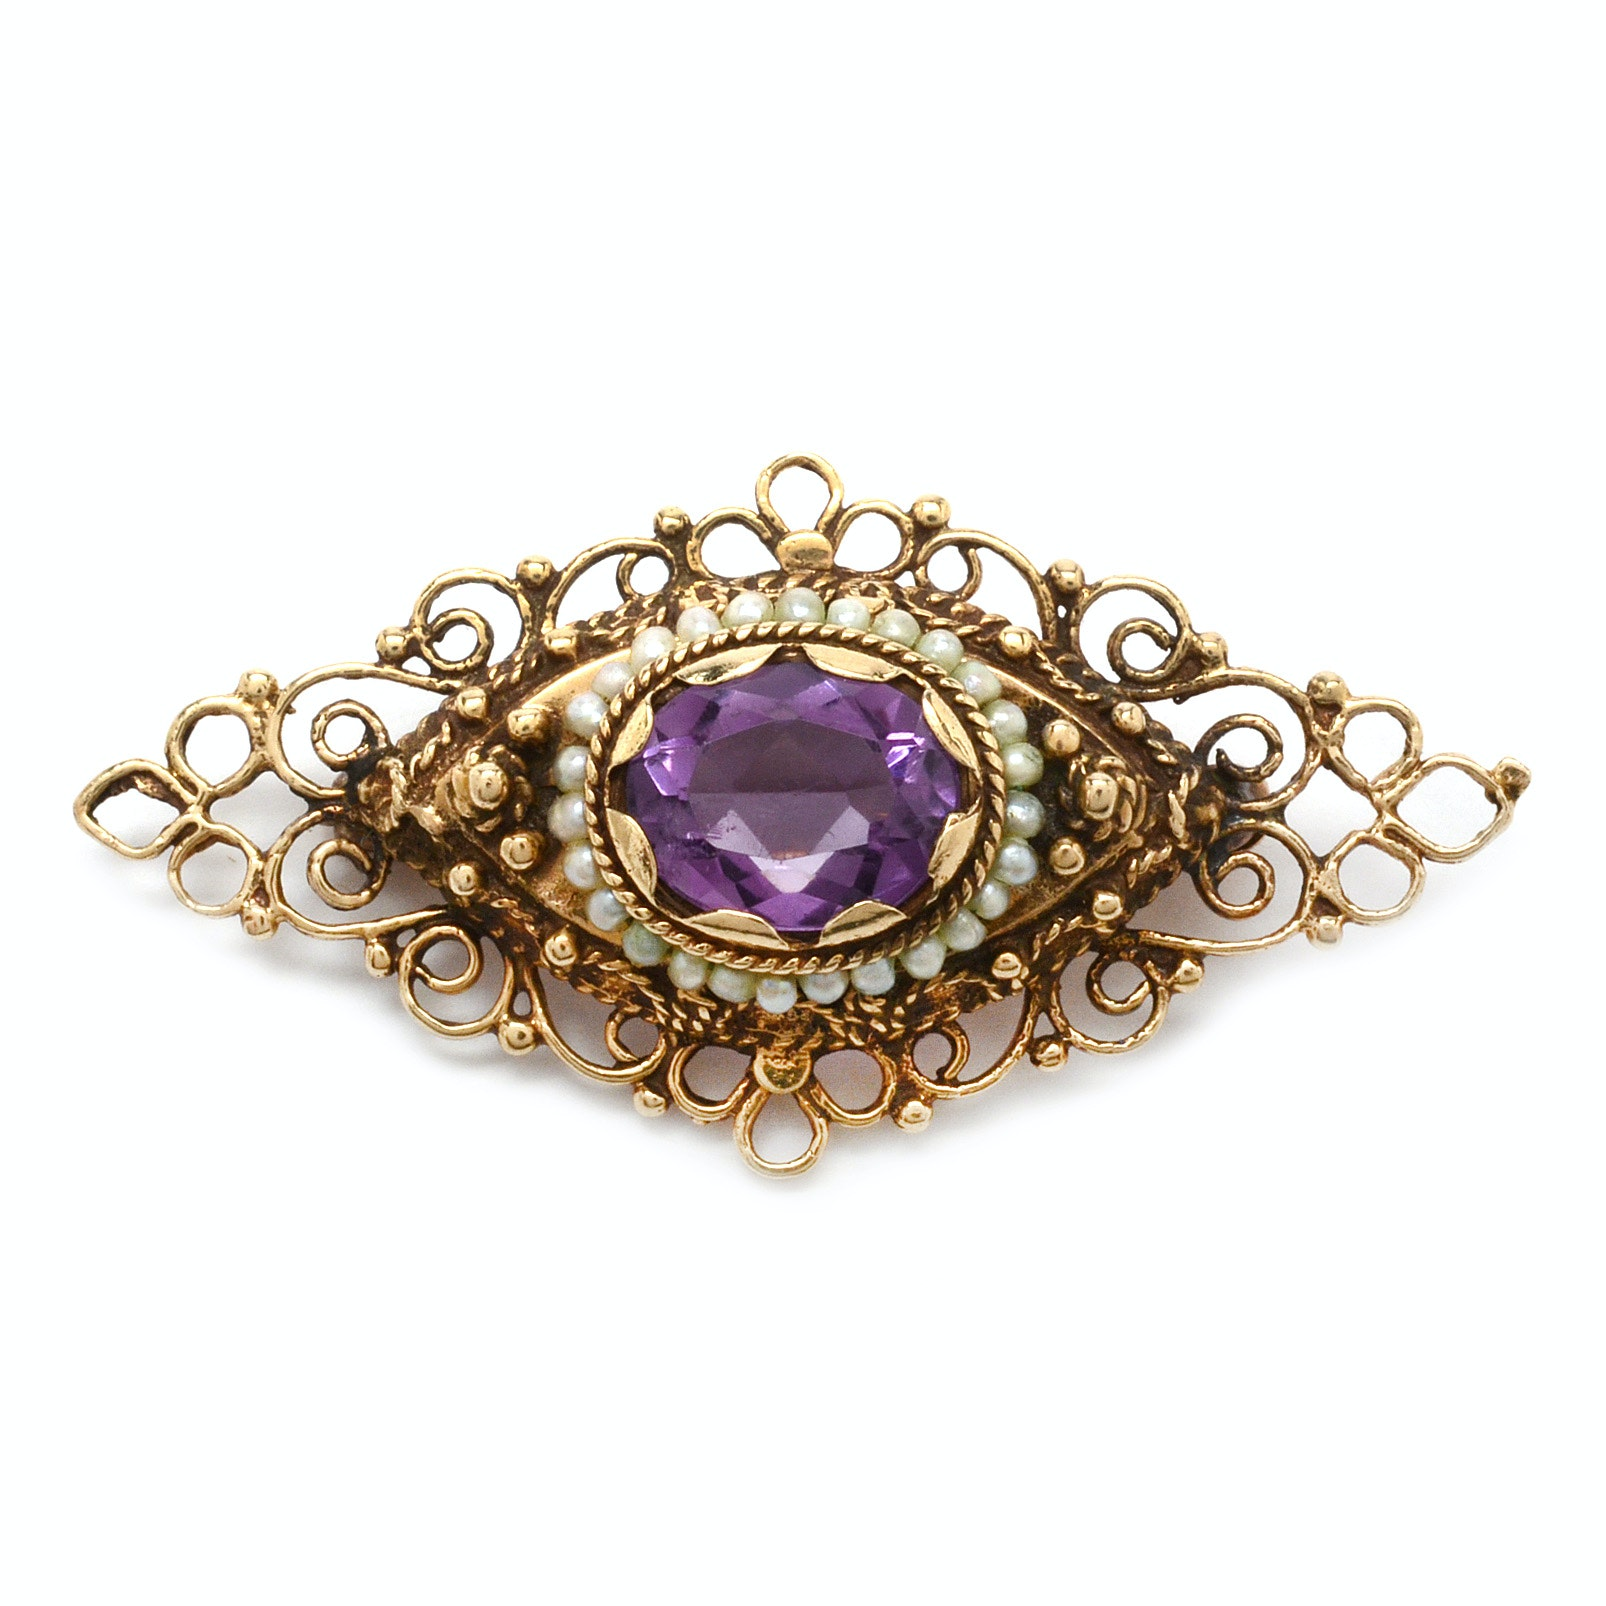 Vintage 14K Yellow Gold Amethyst and Seed Pearl Brooch